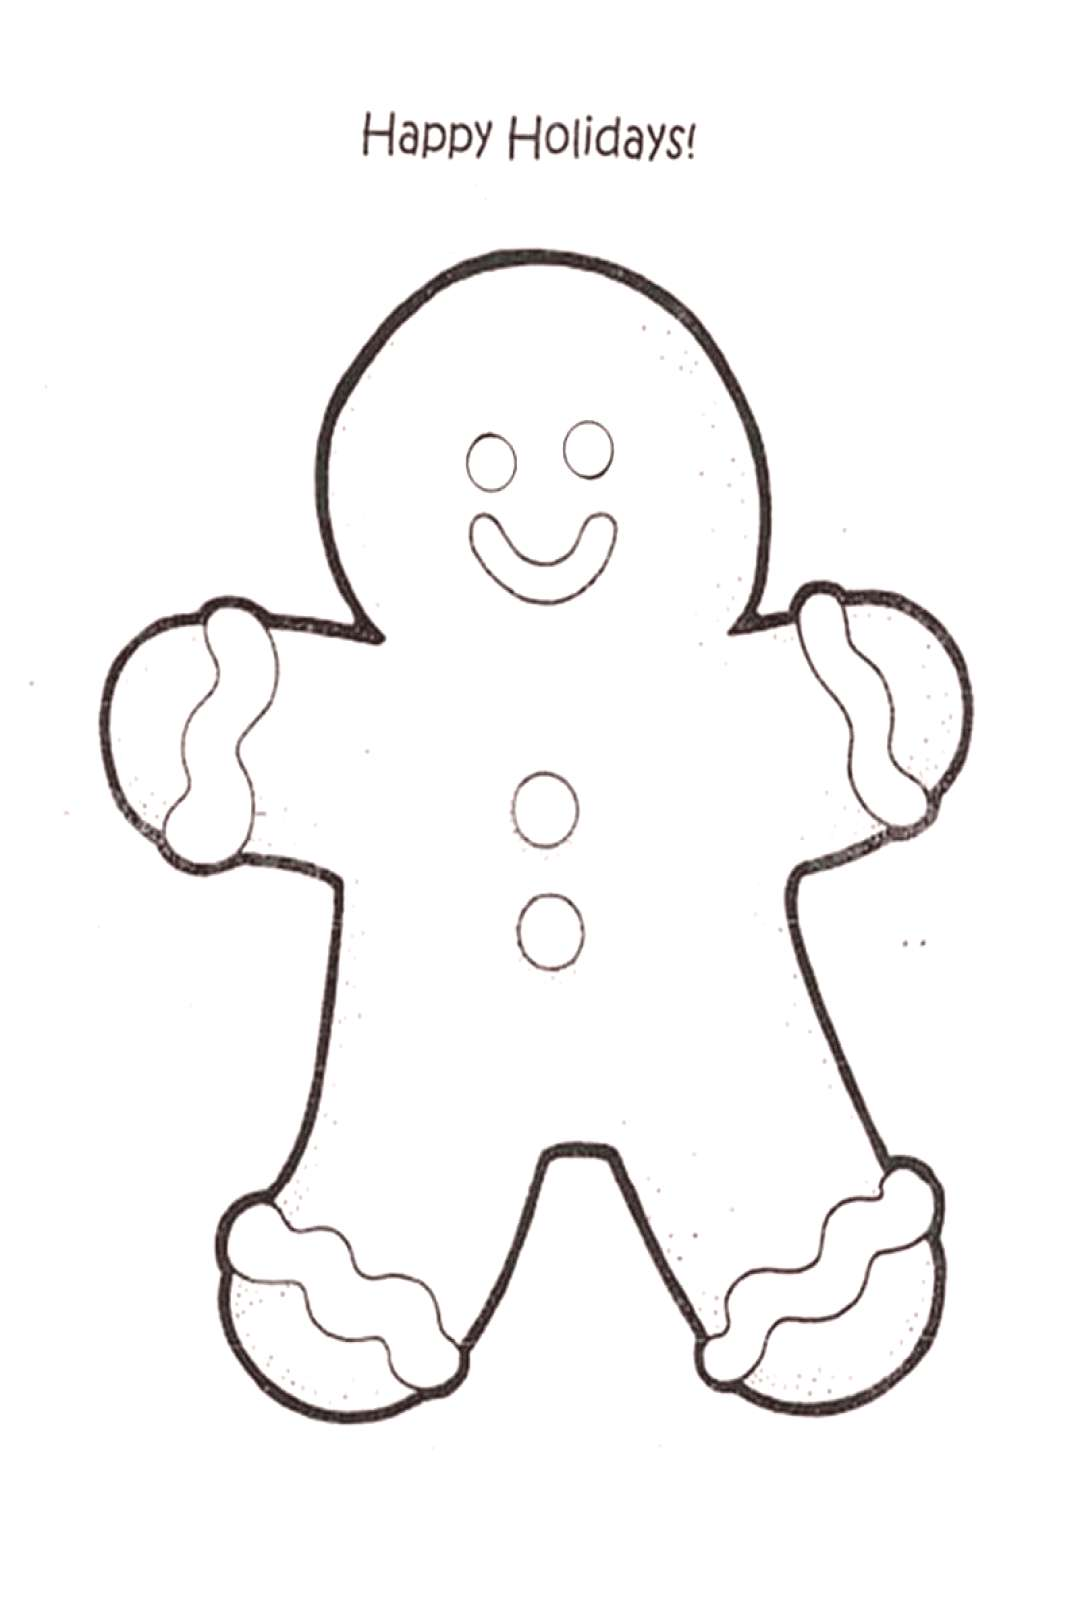 Holiday Coloring Pages Printable Free Holiday Coloring Pages Printable Free Get Happier Life With